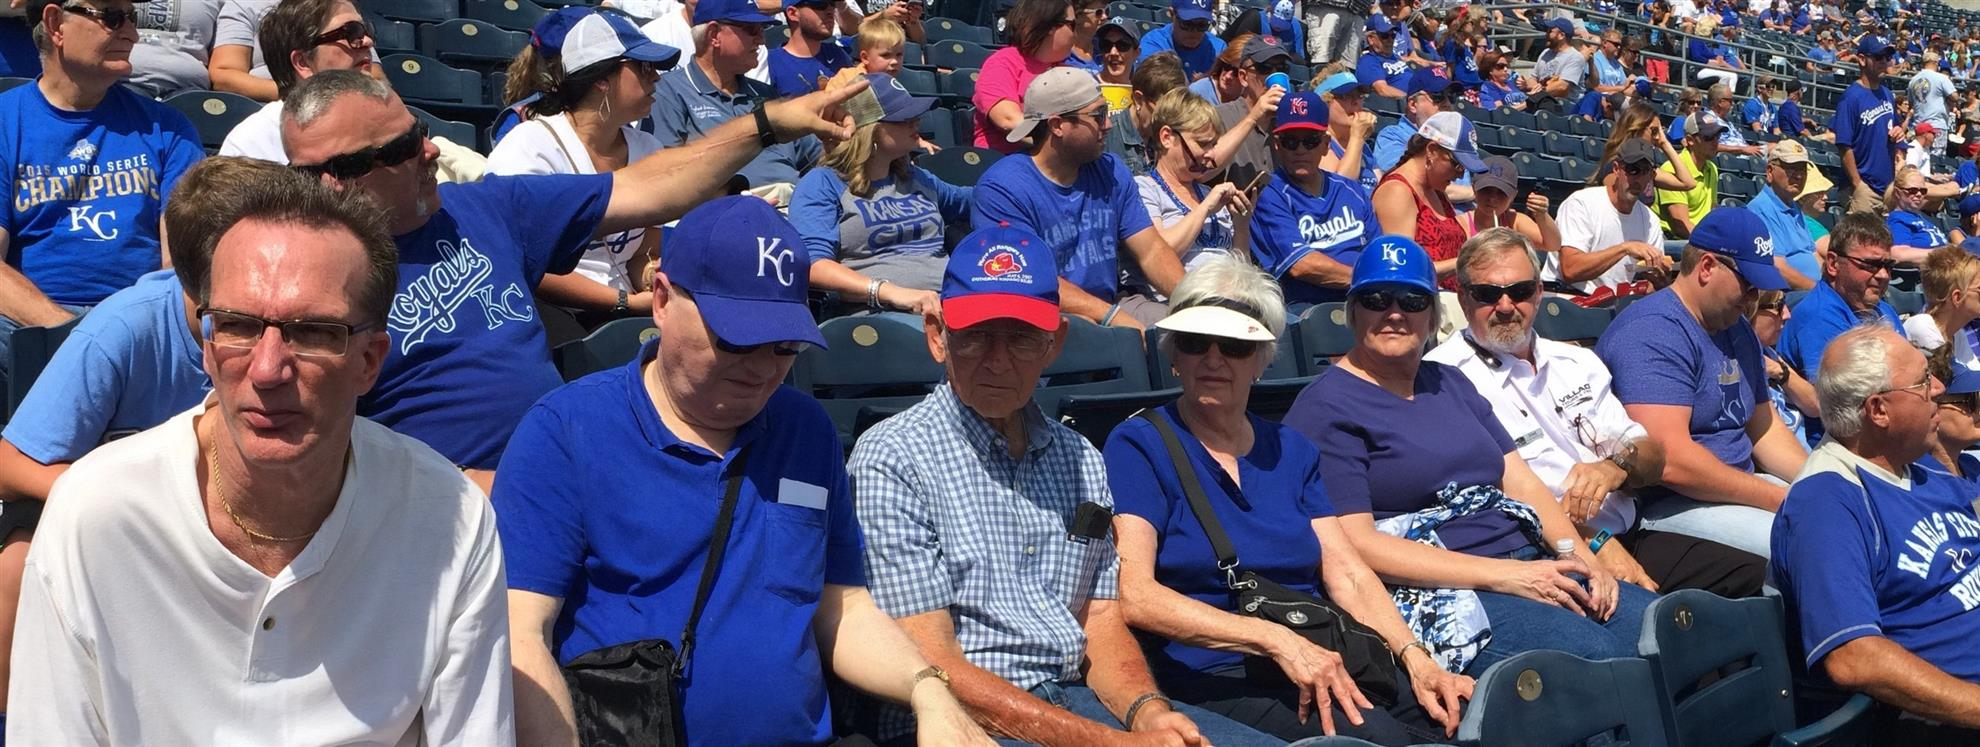 Some of the members of the Rotary Club of Newton boarded a bus September 4  with a destination of Kauffman Stadium to watch the Royals play the Detroit  ... 3312b92bf2d0